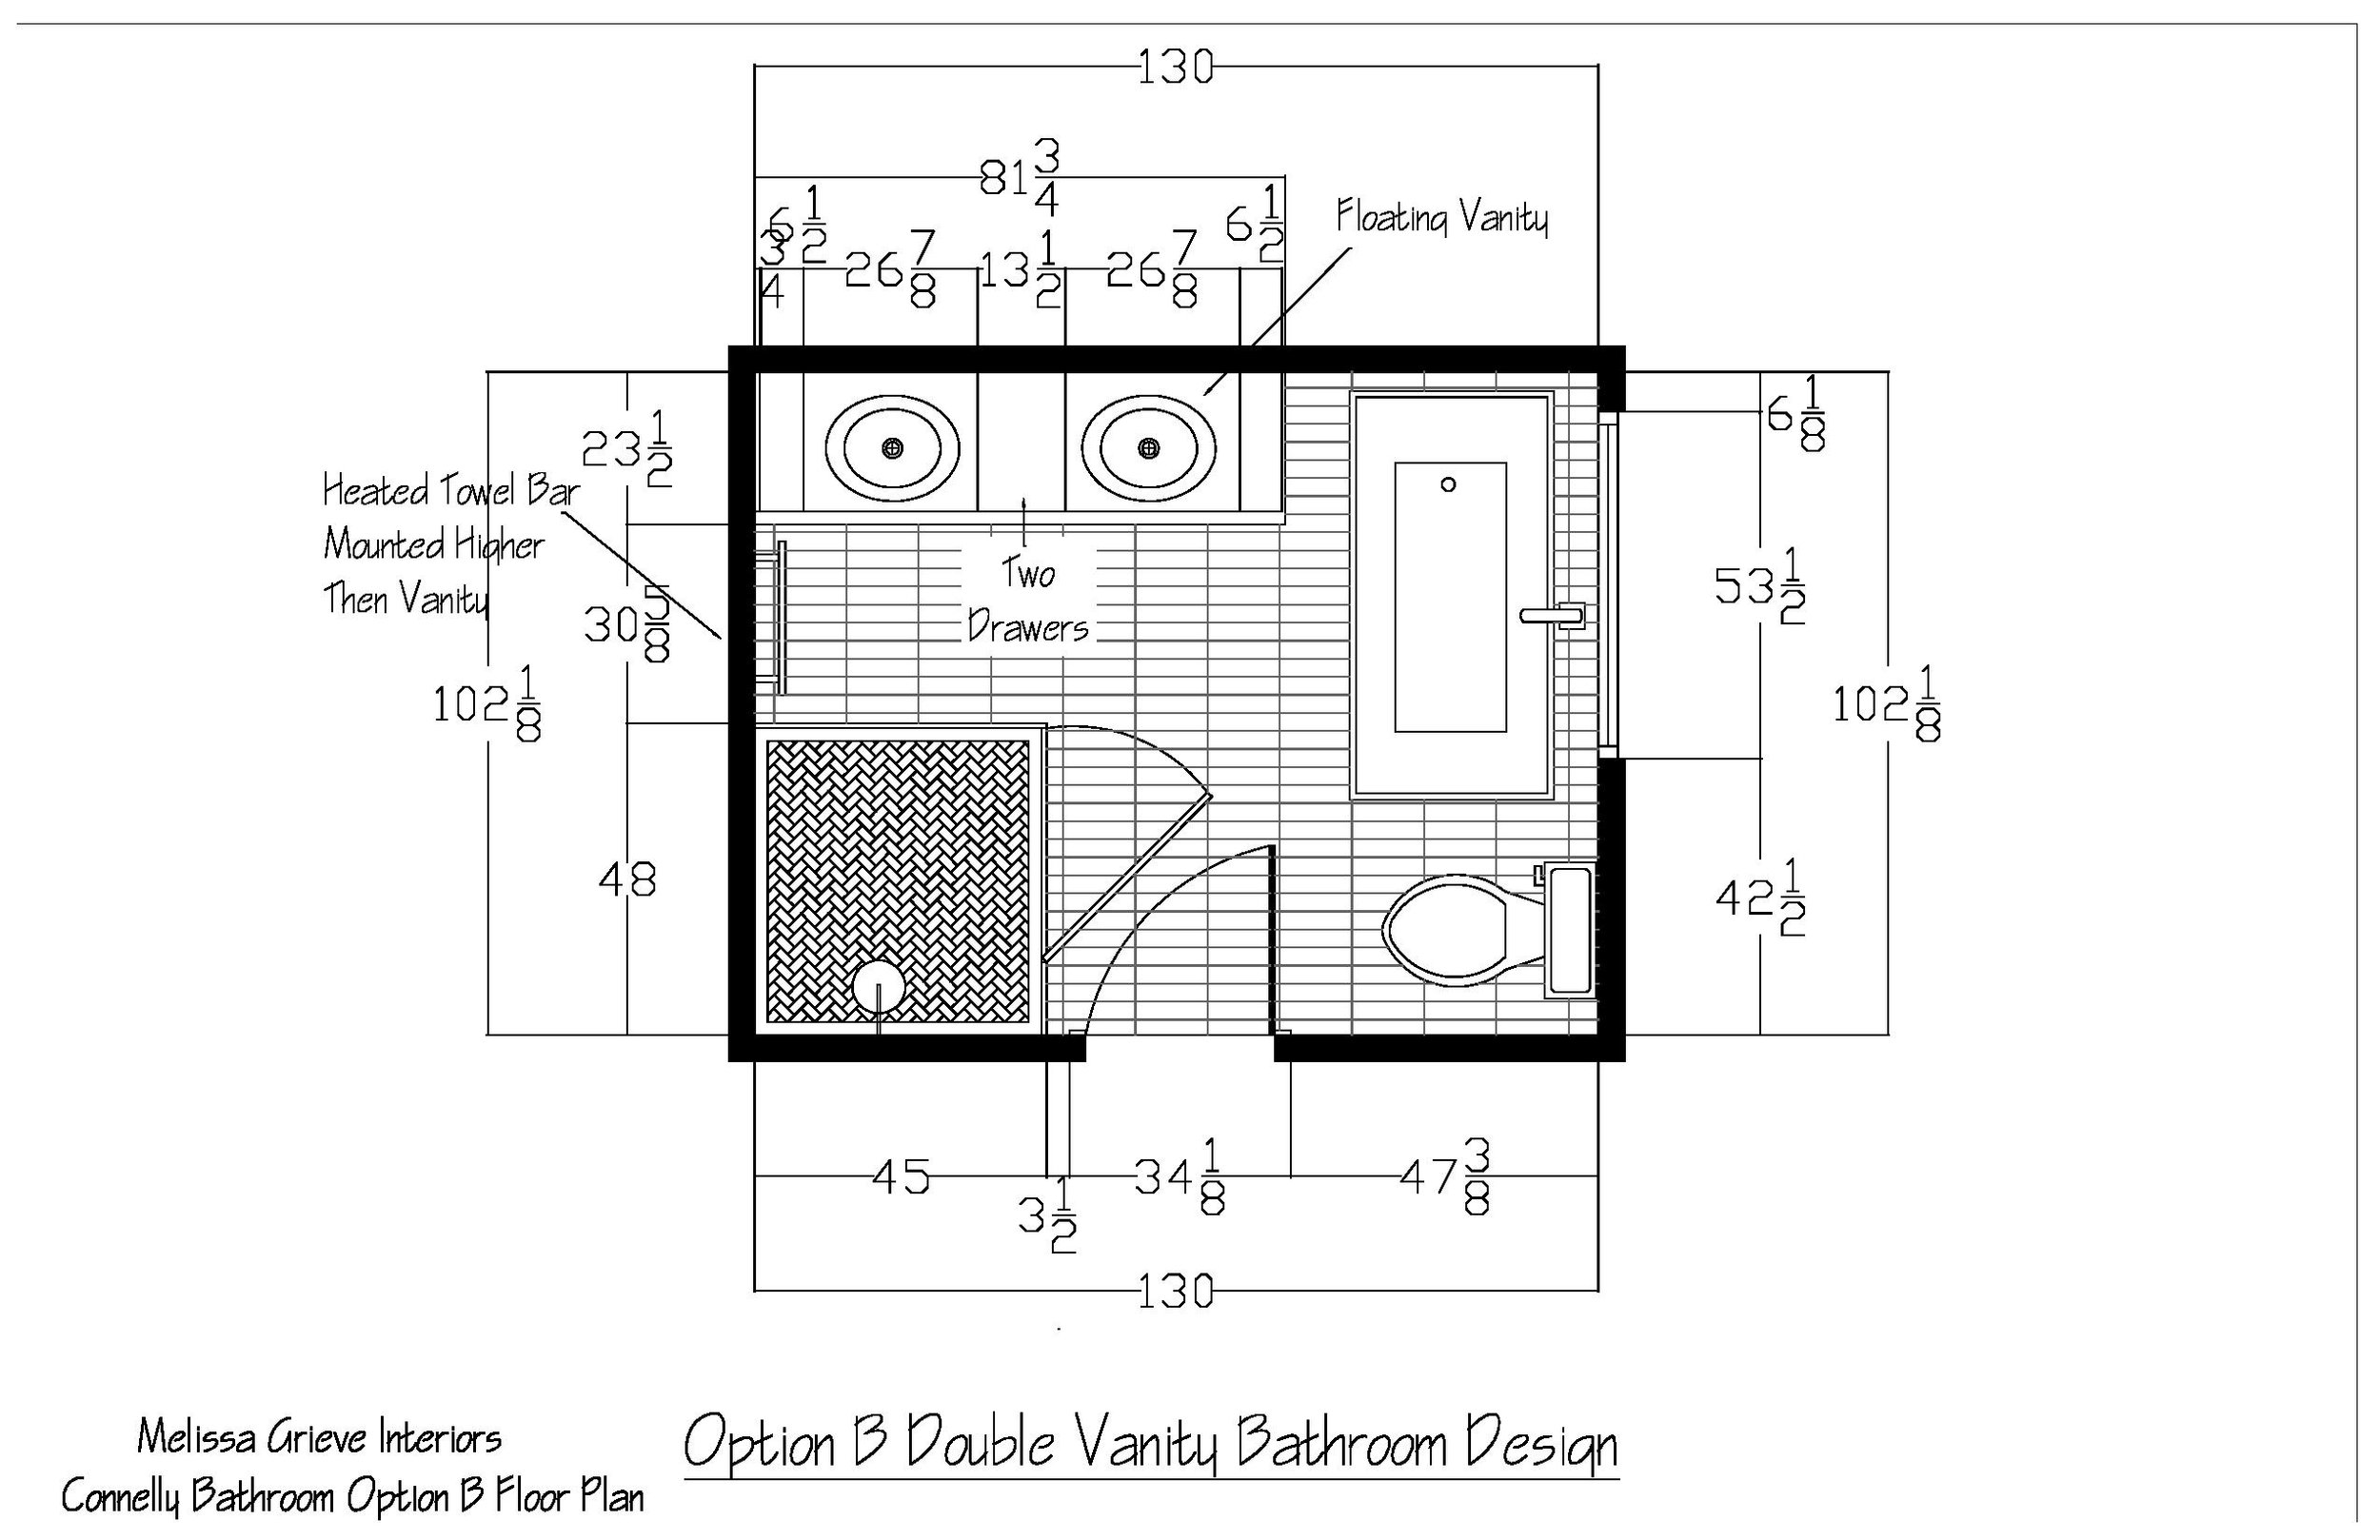 Connelly+Bathroom+Option+B+Floor+Plan+Revised-page-001.jpg